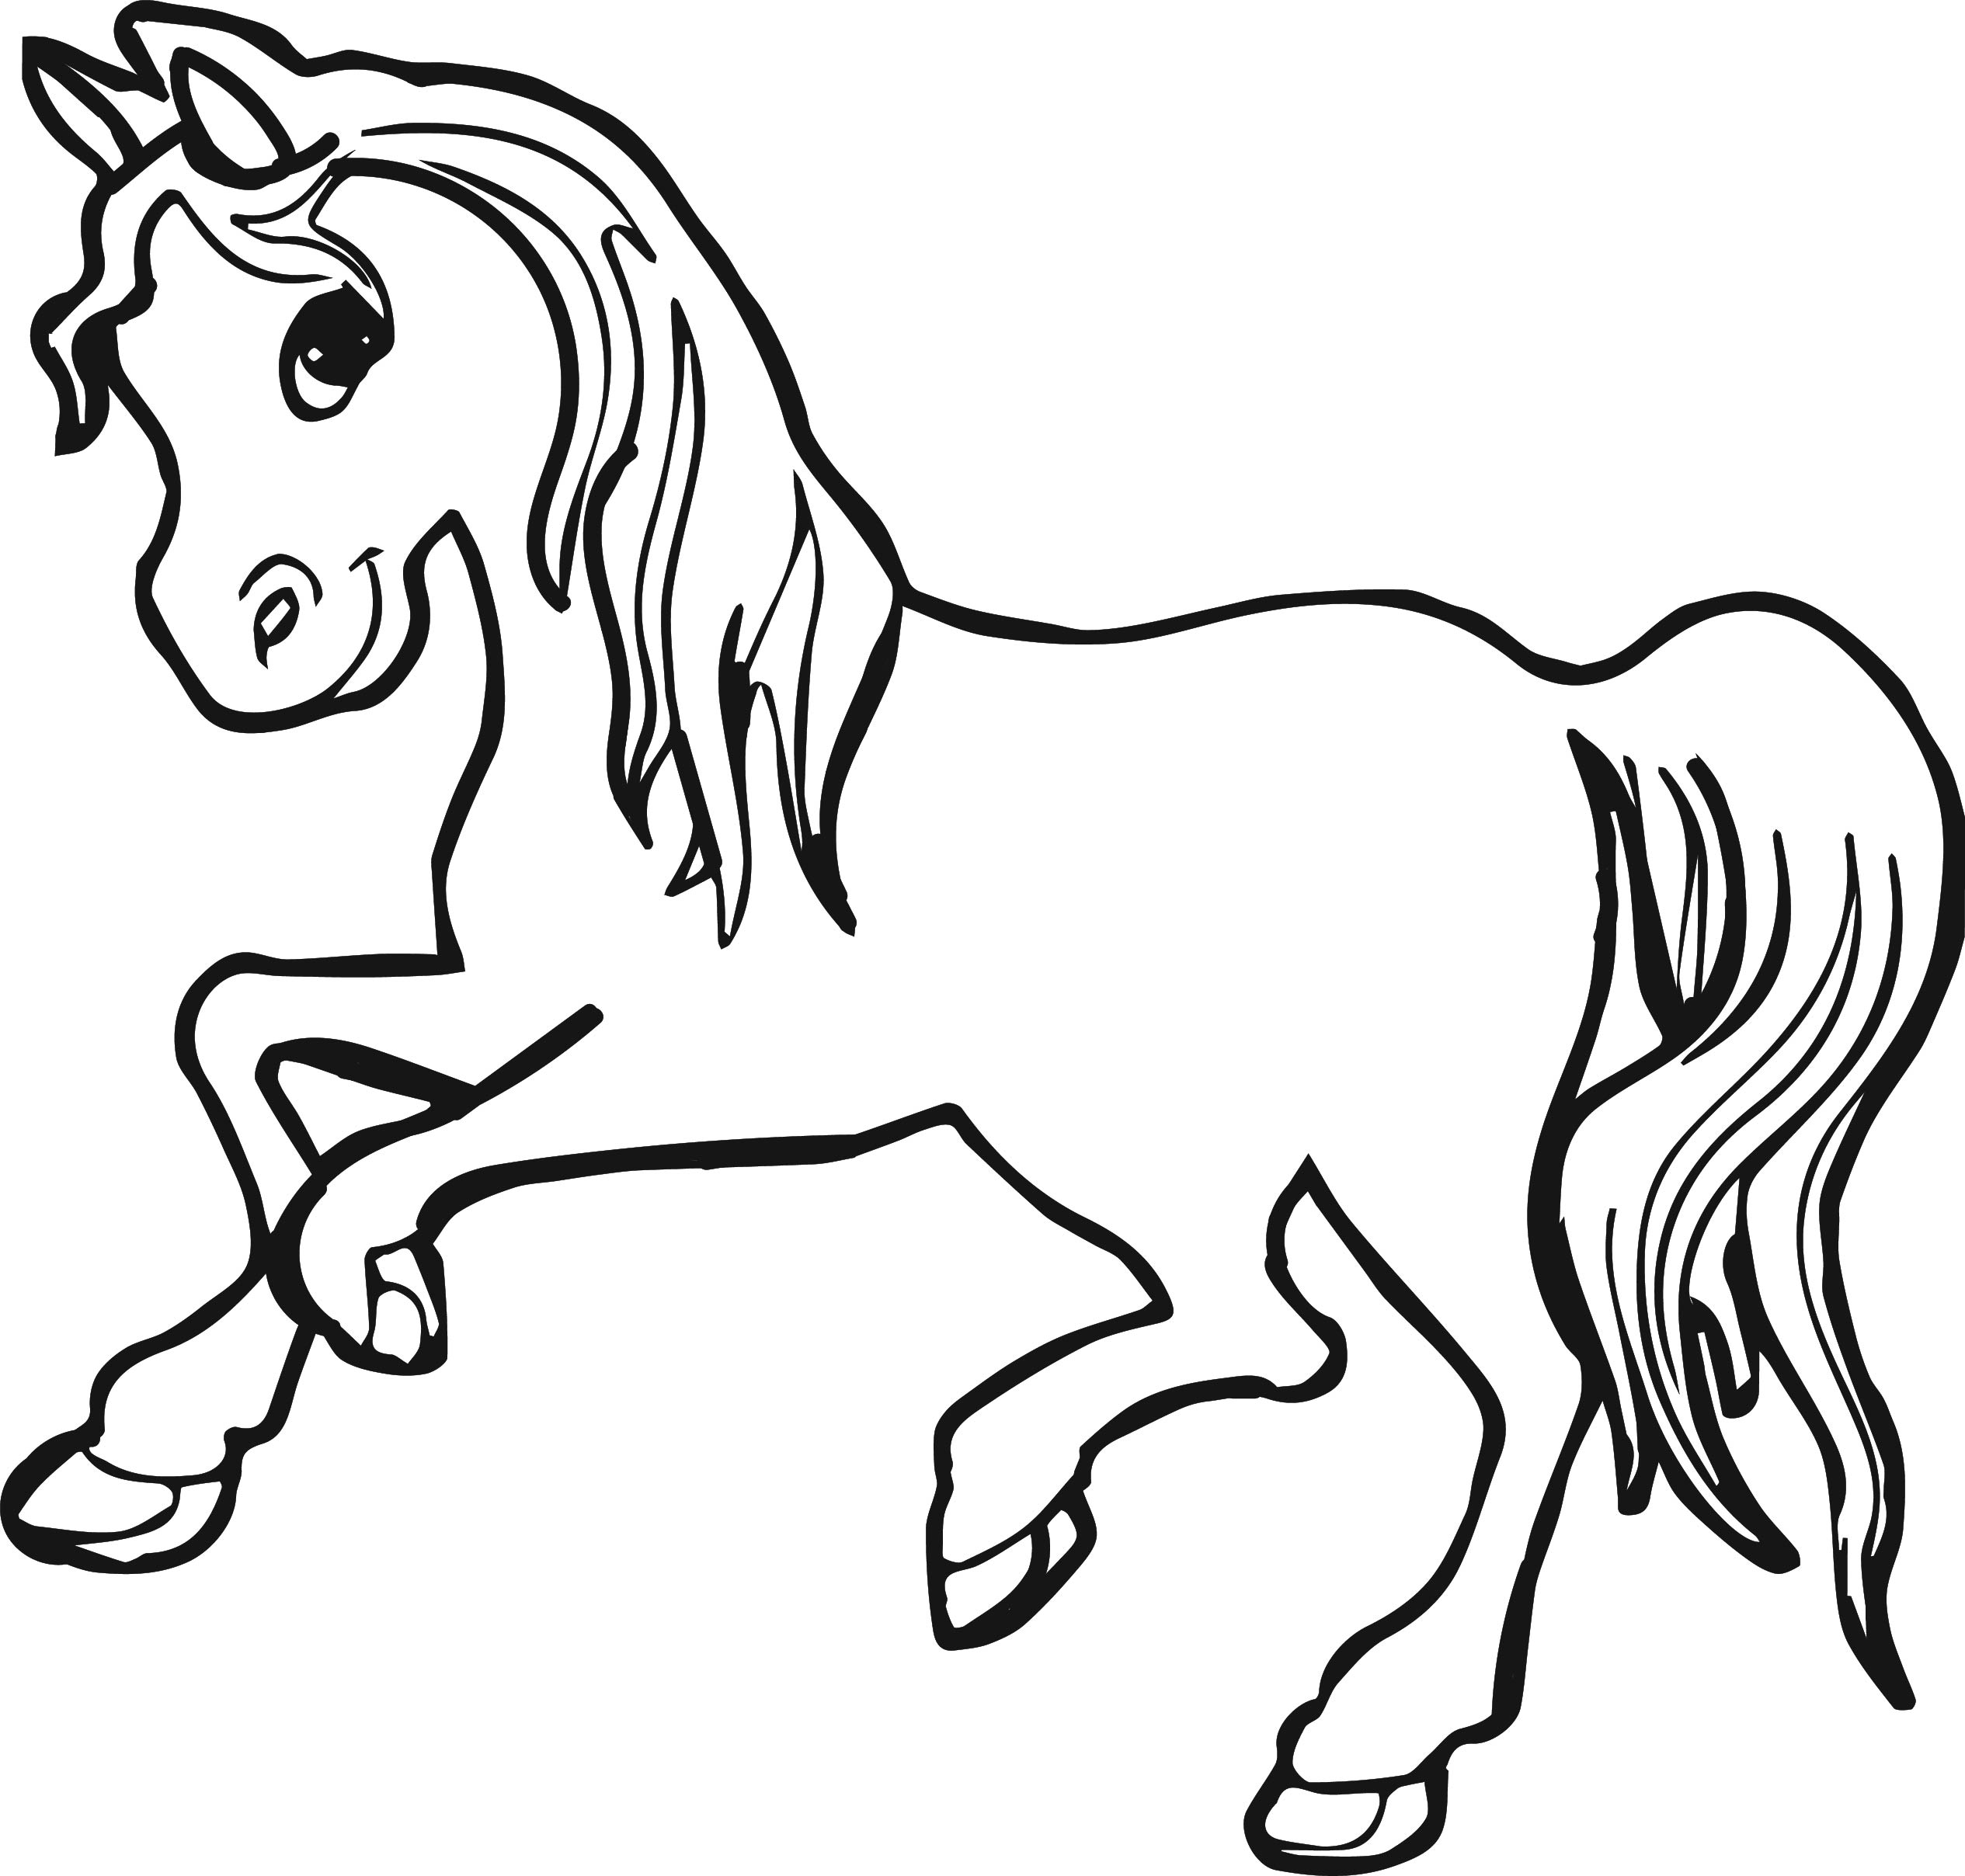 coloring pages of horses to print free horse coloring pages pages print of to horses coloring